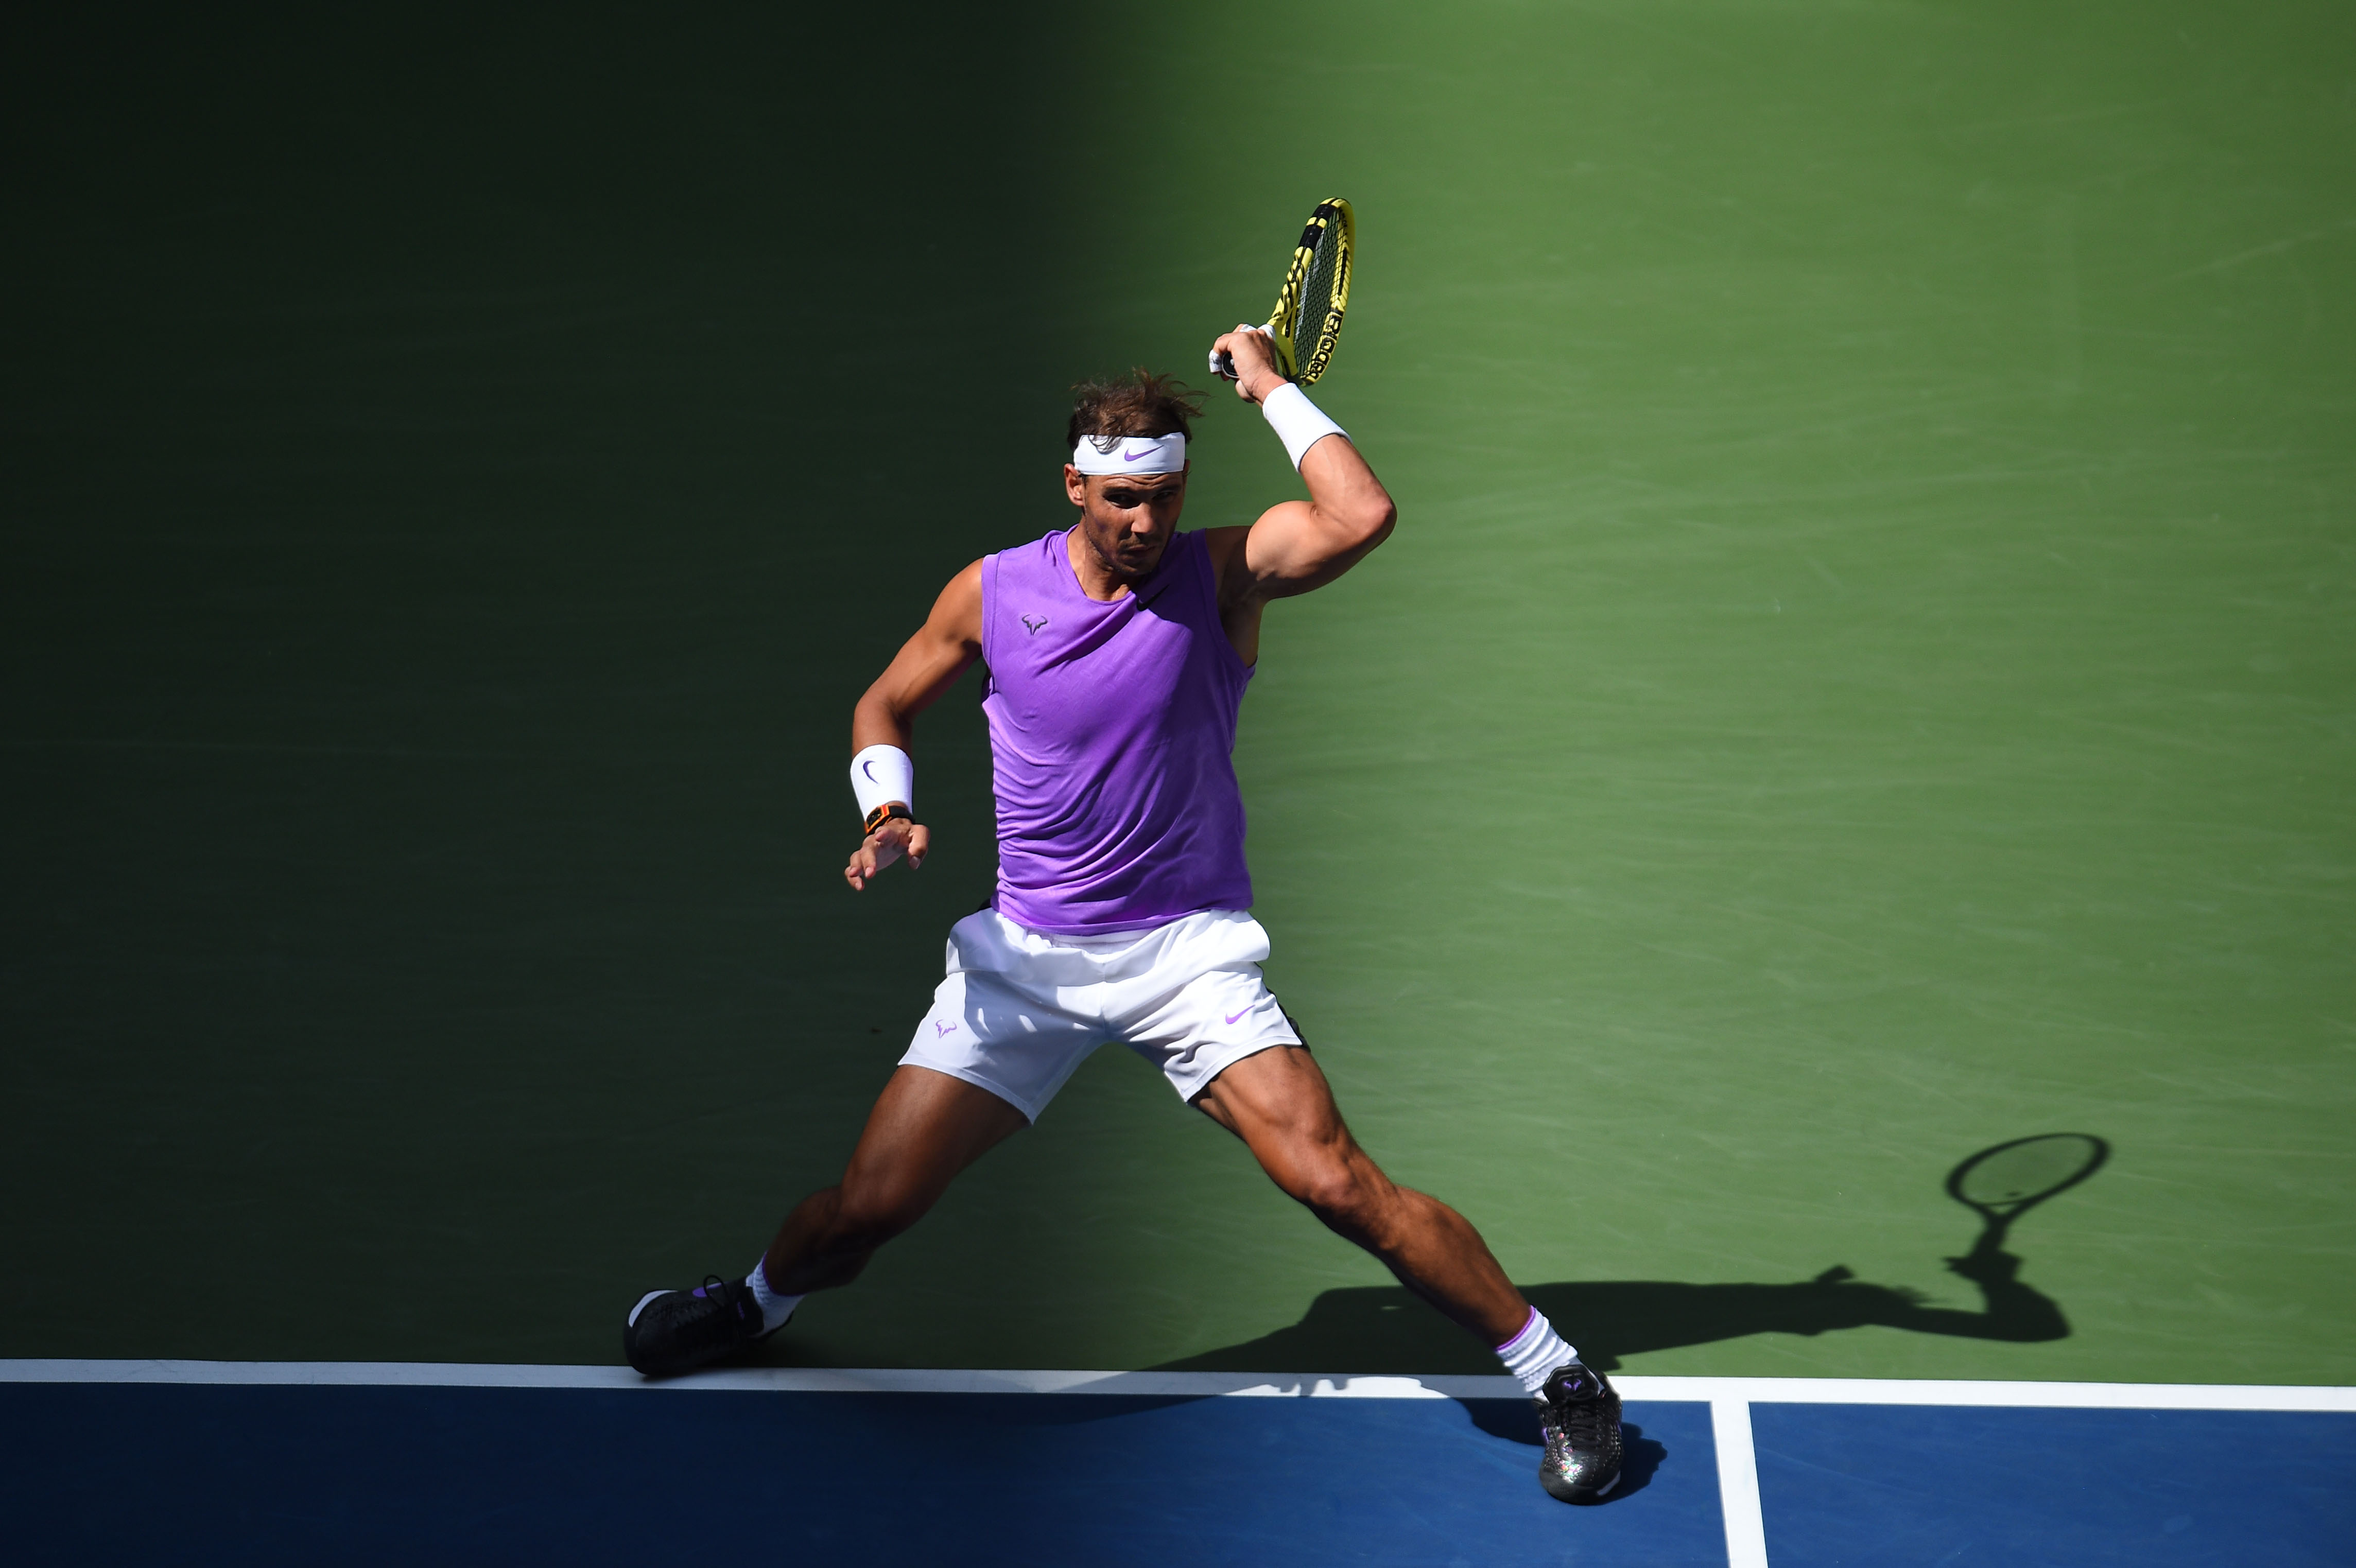 Rafael Nadal hitting a forhand in the light and shadow during hirs third round match at the 2019 US Open